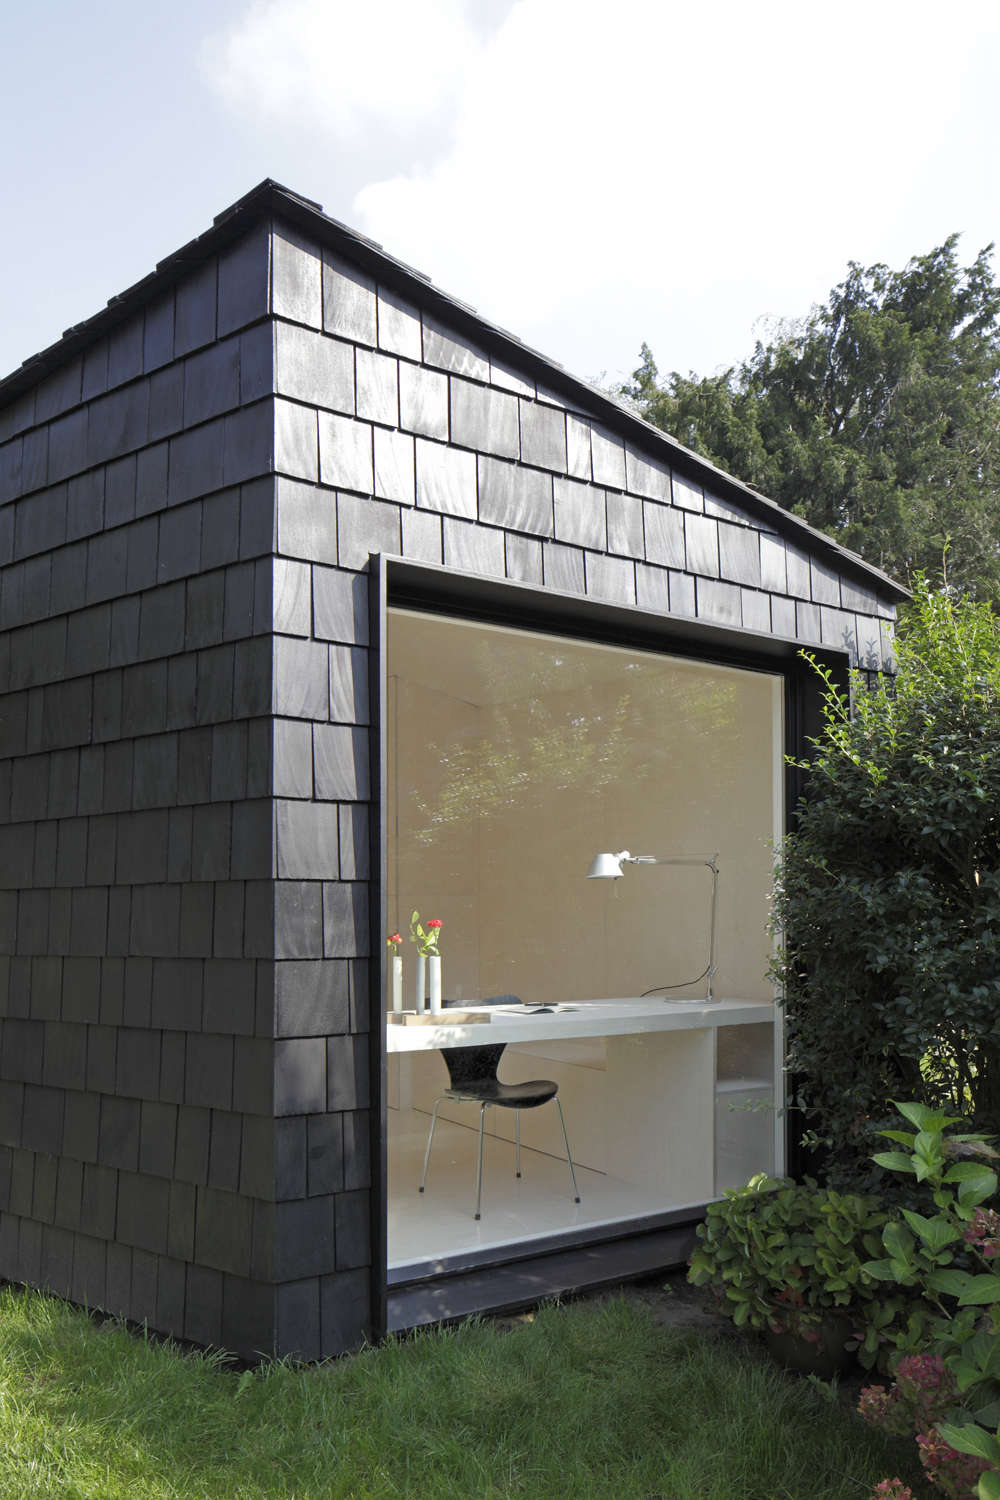 backyard guest house. Above: Two Thousand Black-stained Cedar Shingles Envelop The Building And Extend To Roof, Provide A Quiet Dramatic Backdrop For Backyard\u0027s Backyard Guest House